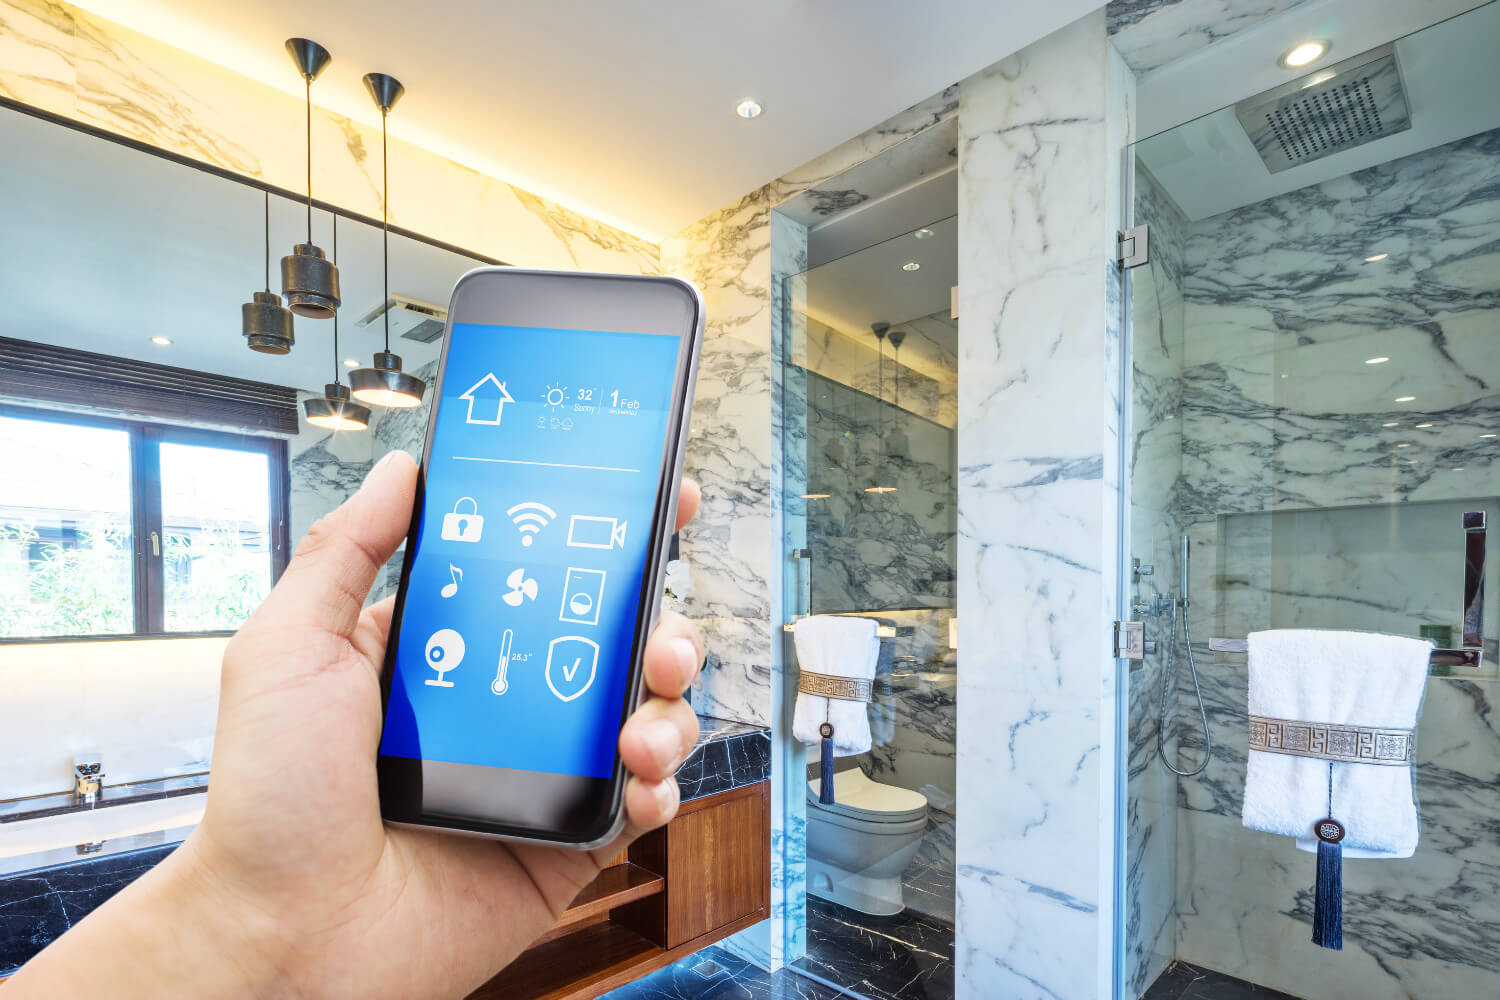 Digital Showers with Digital Shower Controls. Control the Shower Using Your Smartphone